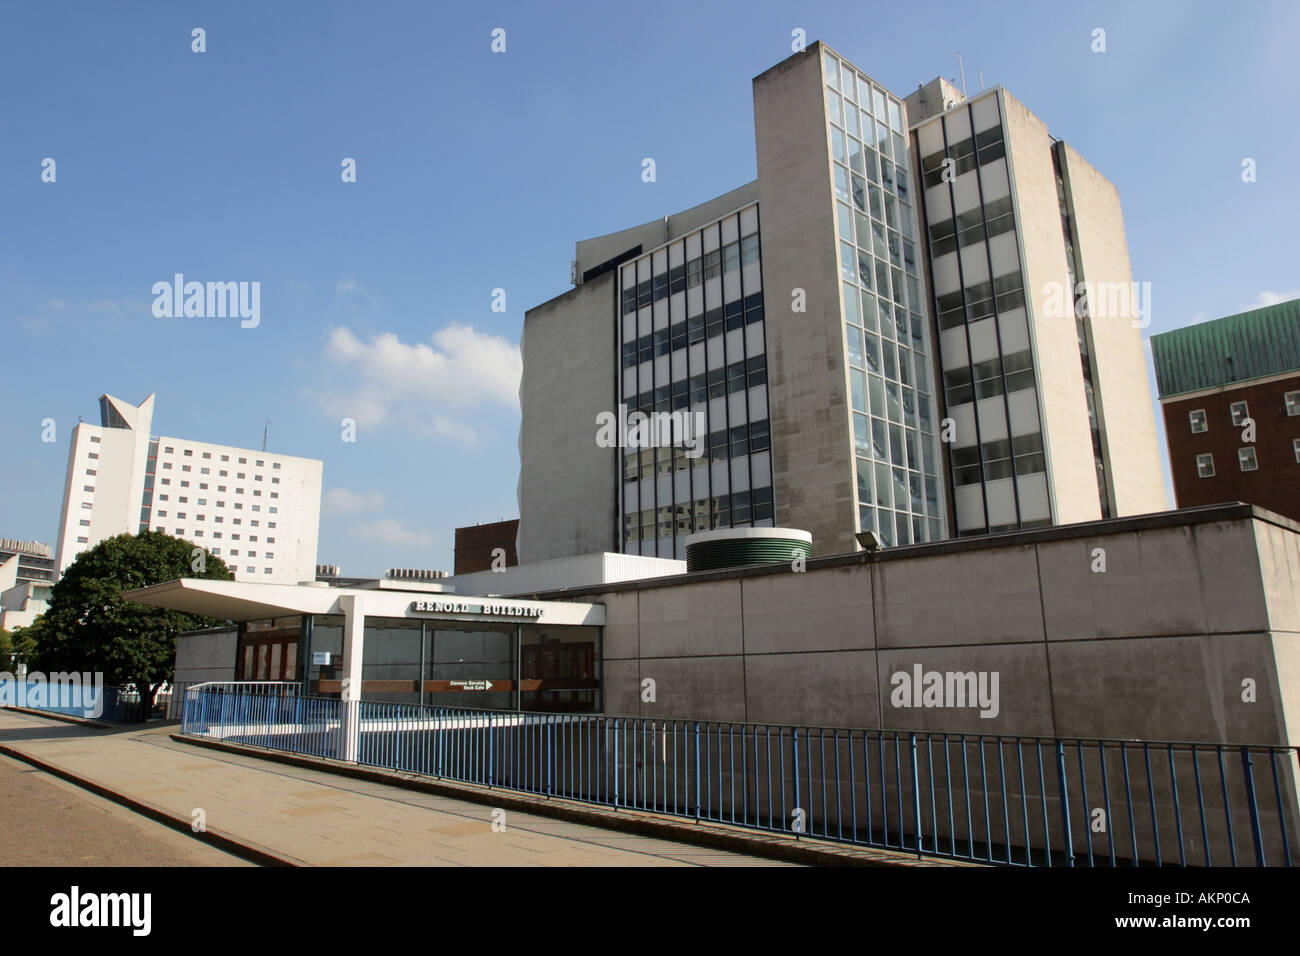 University of manchester renold building